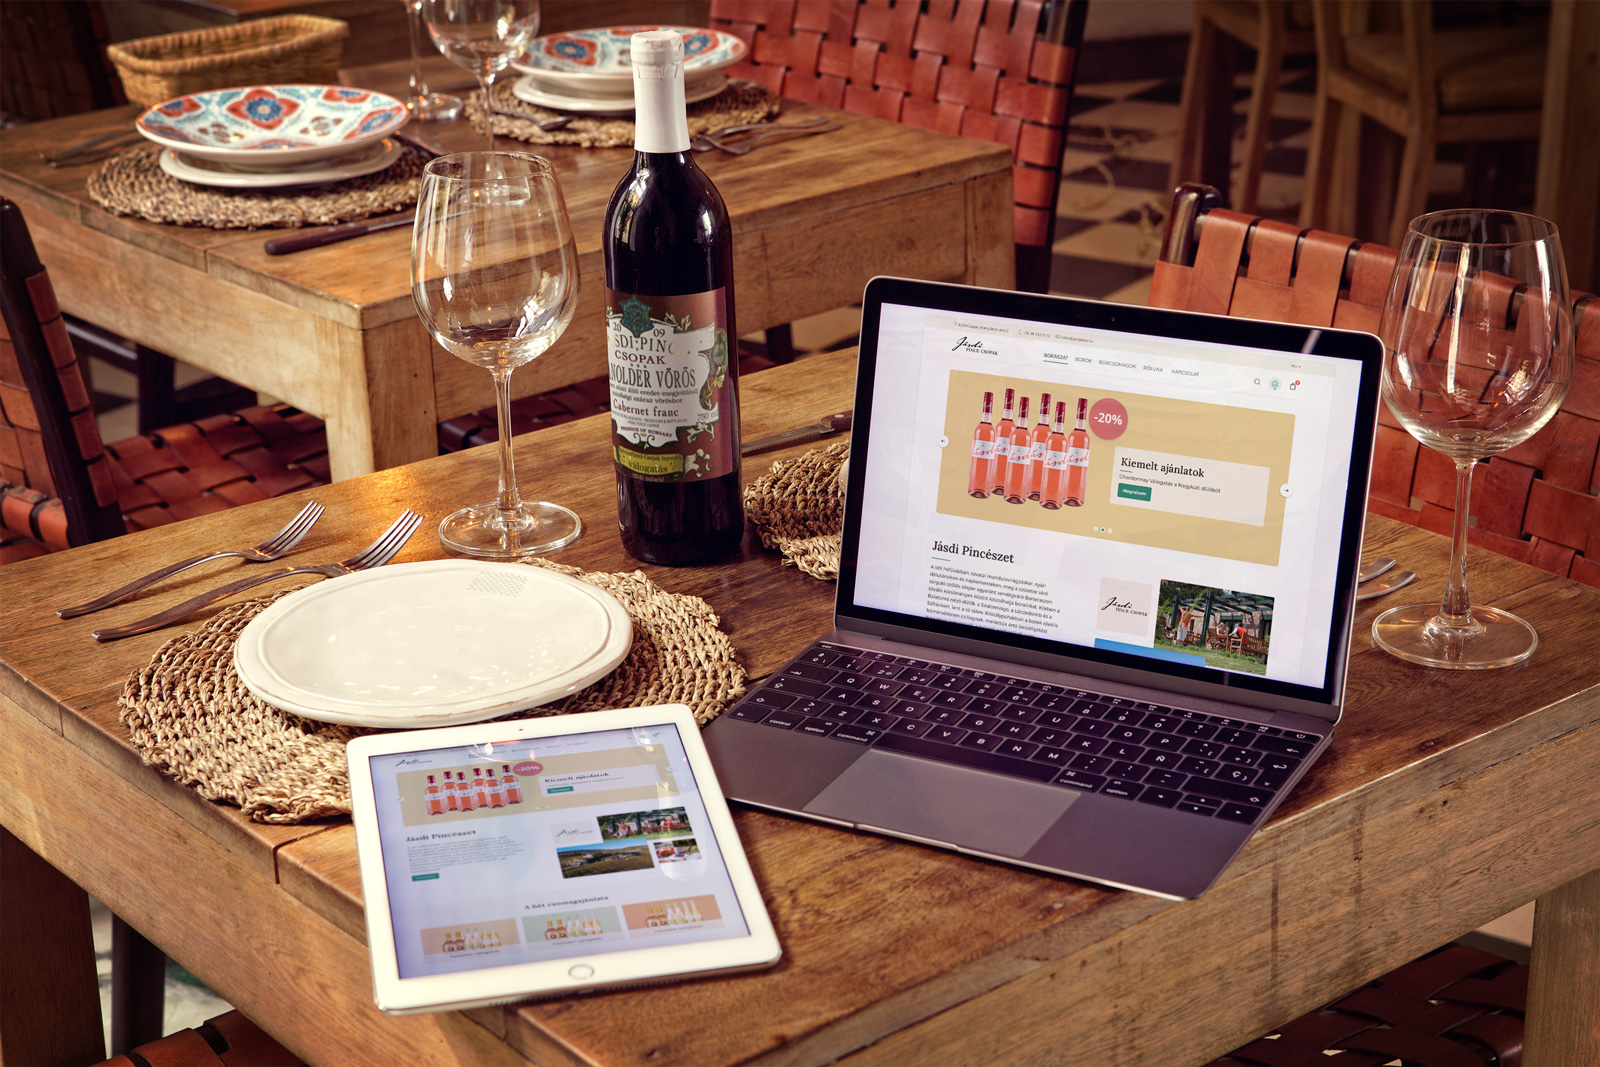 wine-bottle-ipad-air-2-macbook-mockup